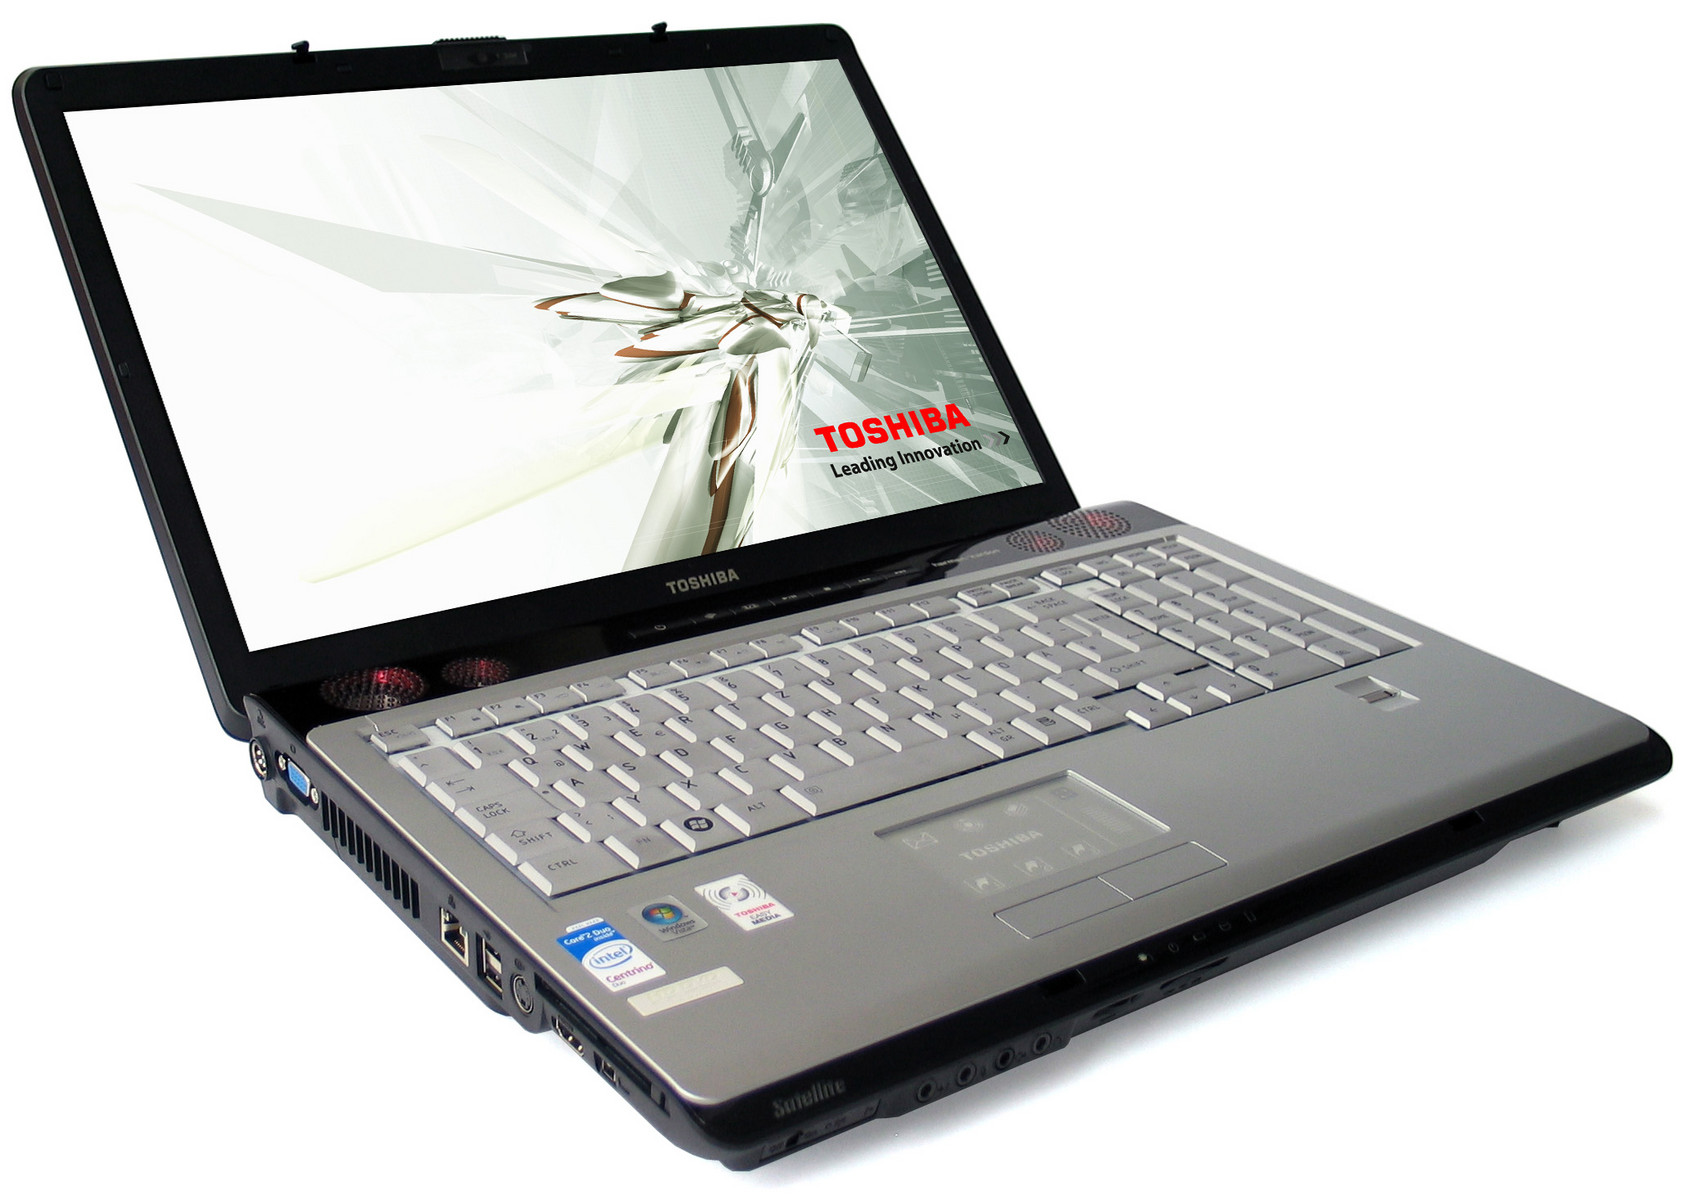 toshiba satellite x200 21p external reviews. Black Bedroom Furniture Sets. Home Design Ideas